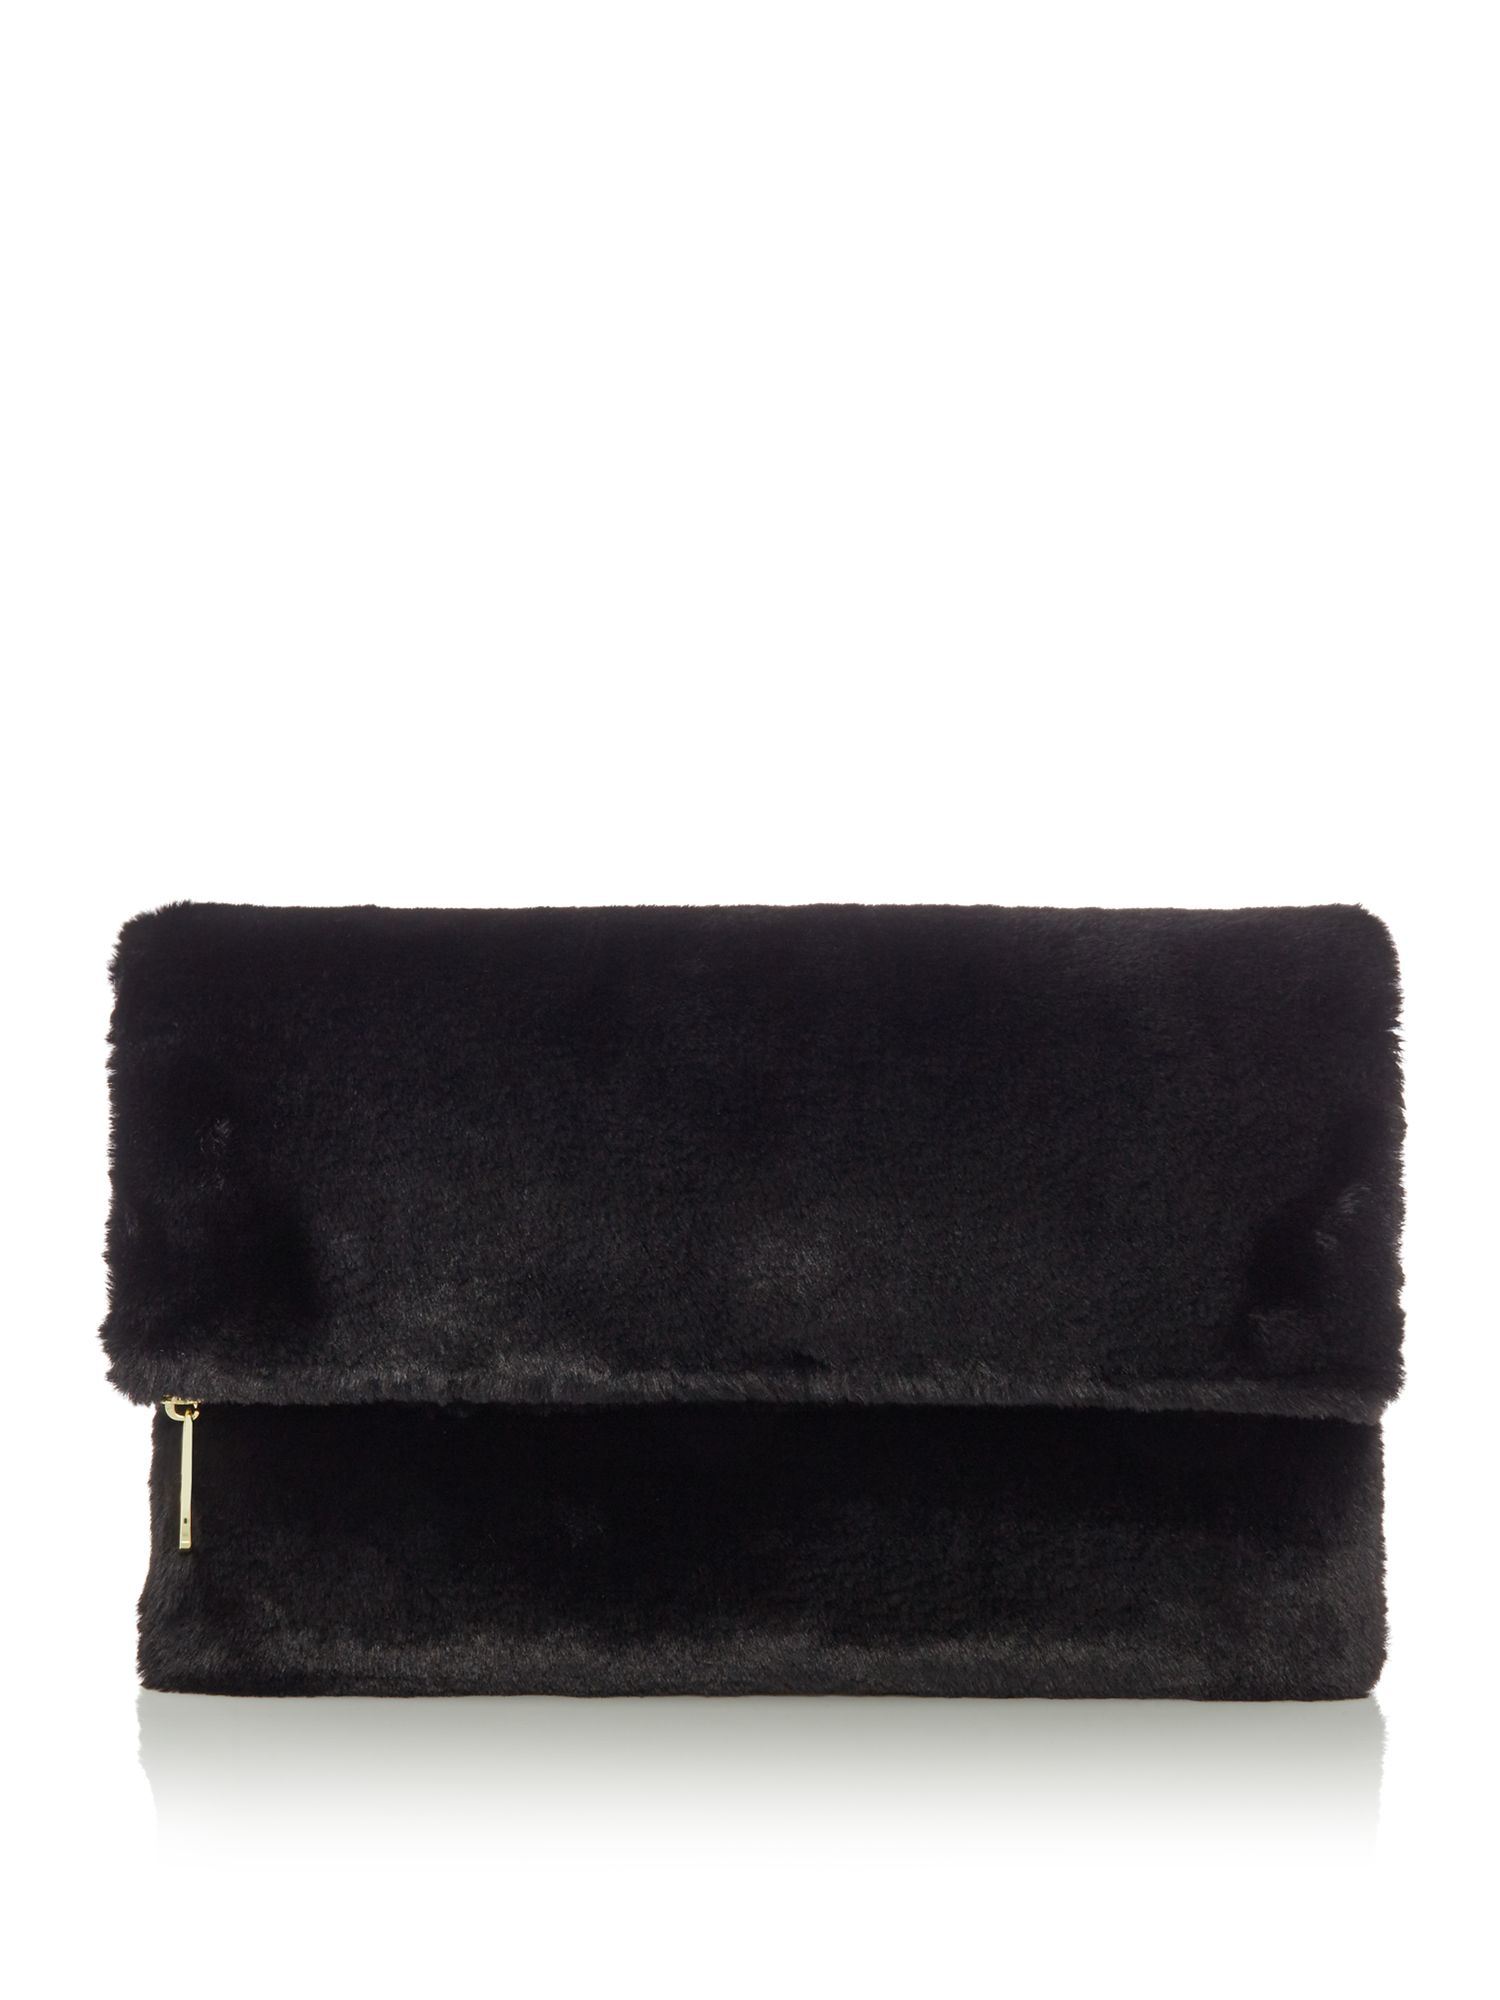 Therapy cuddle fur clutch